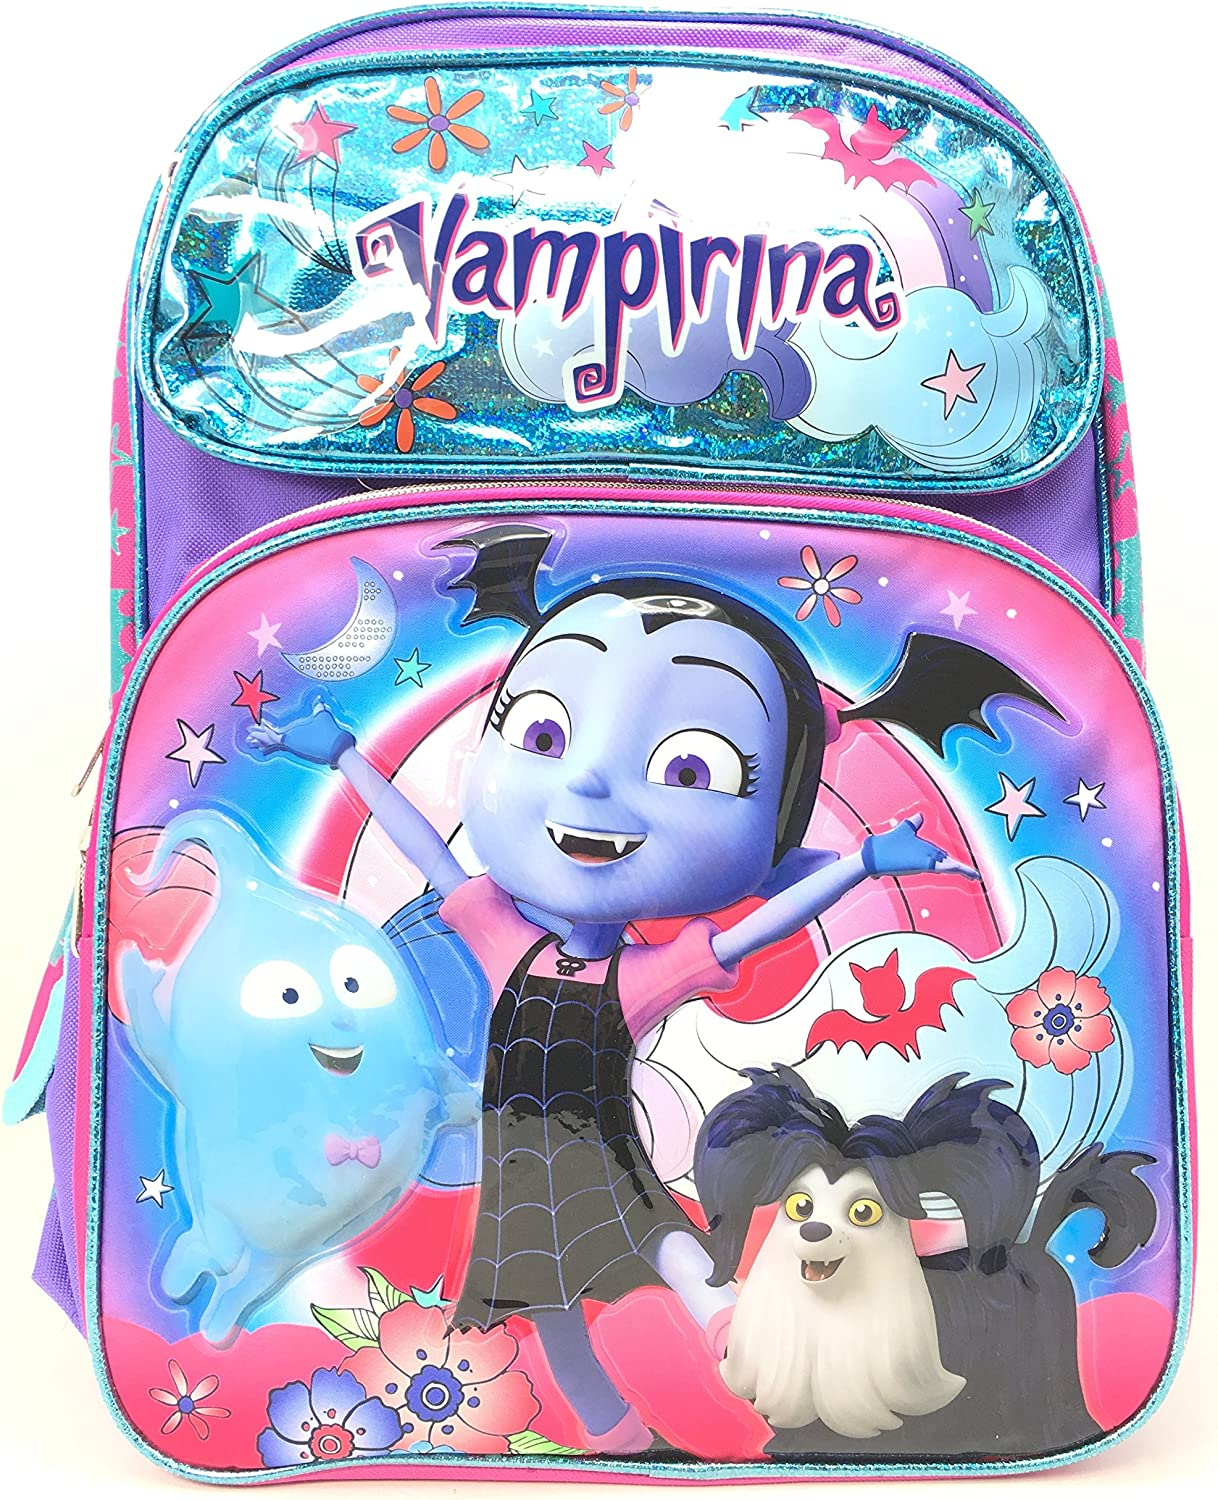 Vampirina Backpack Shiny bluee w Friedns 16  School Bag 151676